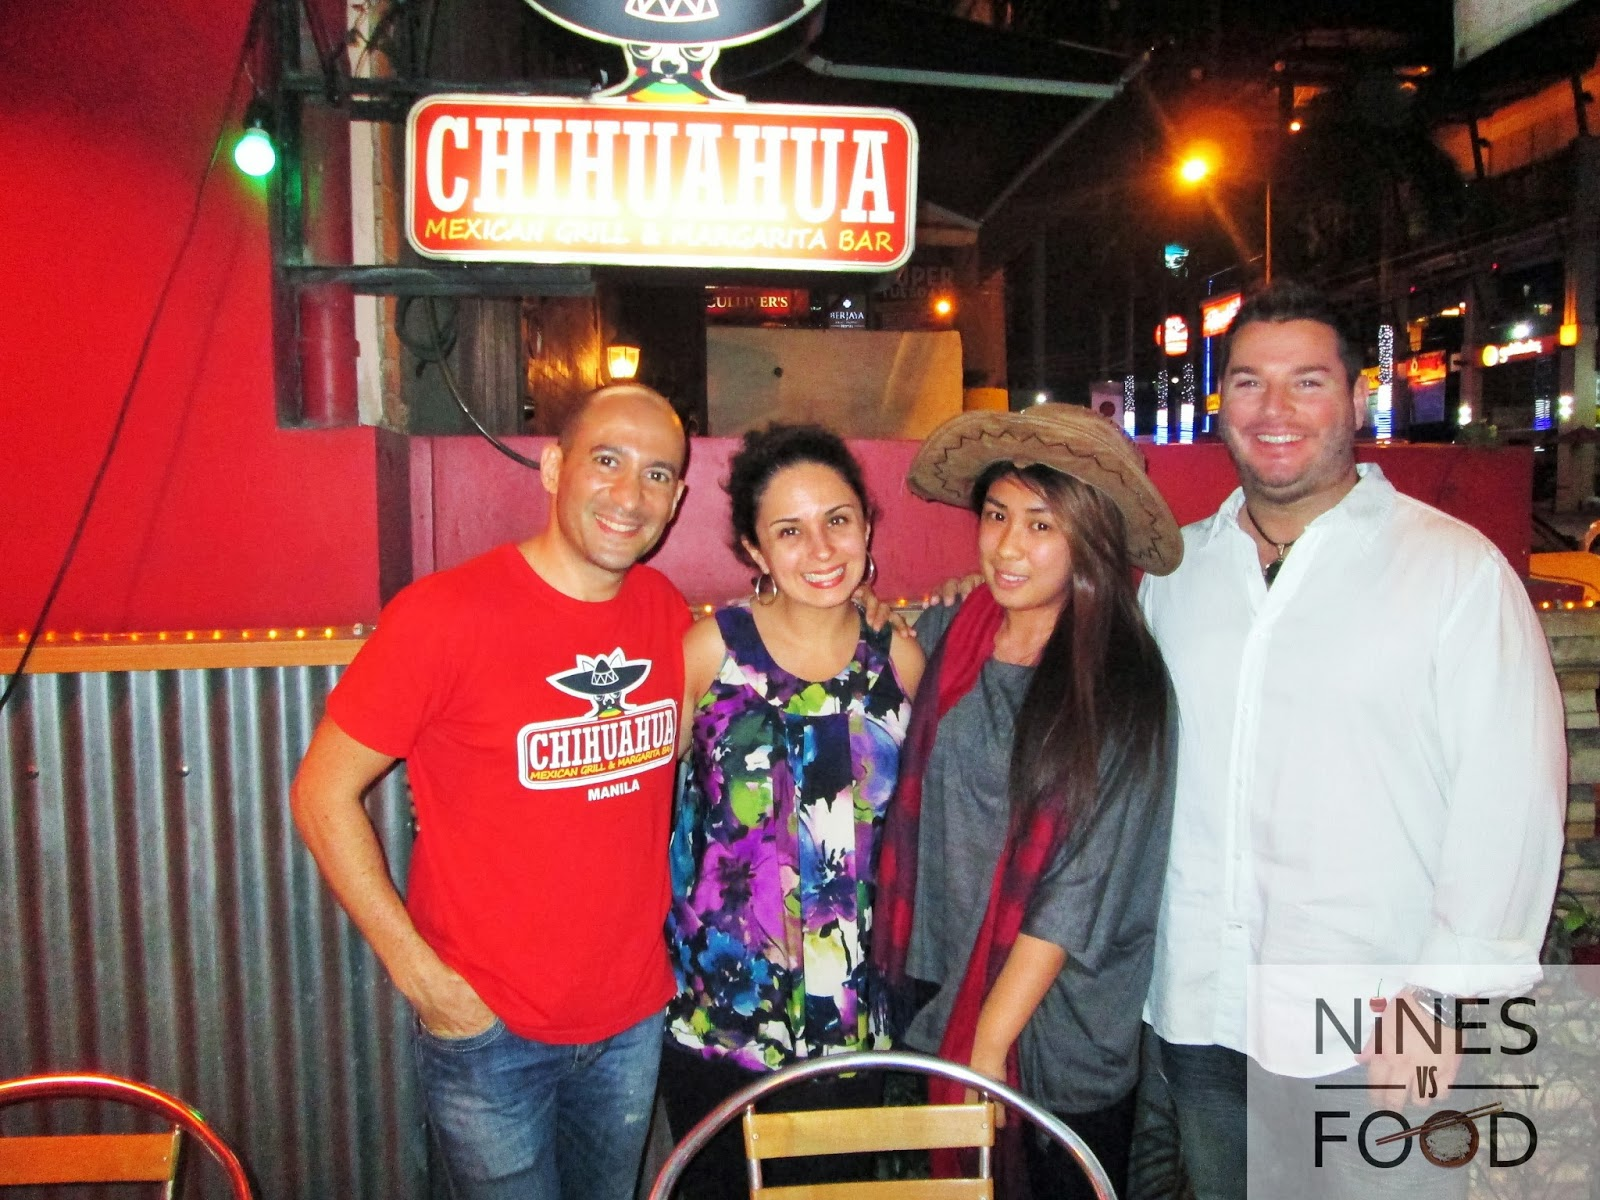 Nines vs. Food - Chihuahua Mexican Grill and Margarita Bar Makati Avenue-21.jpg